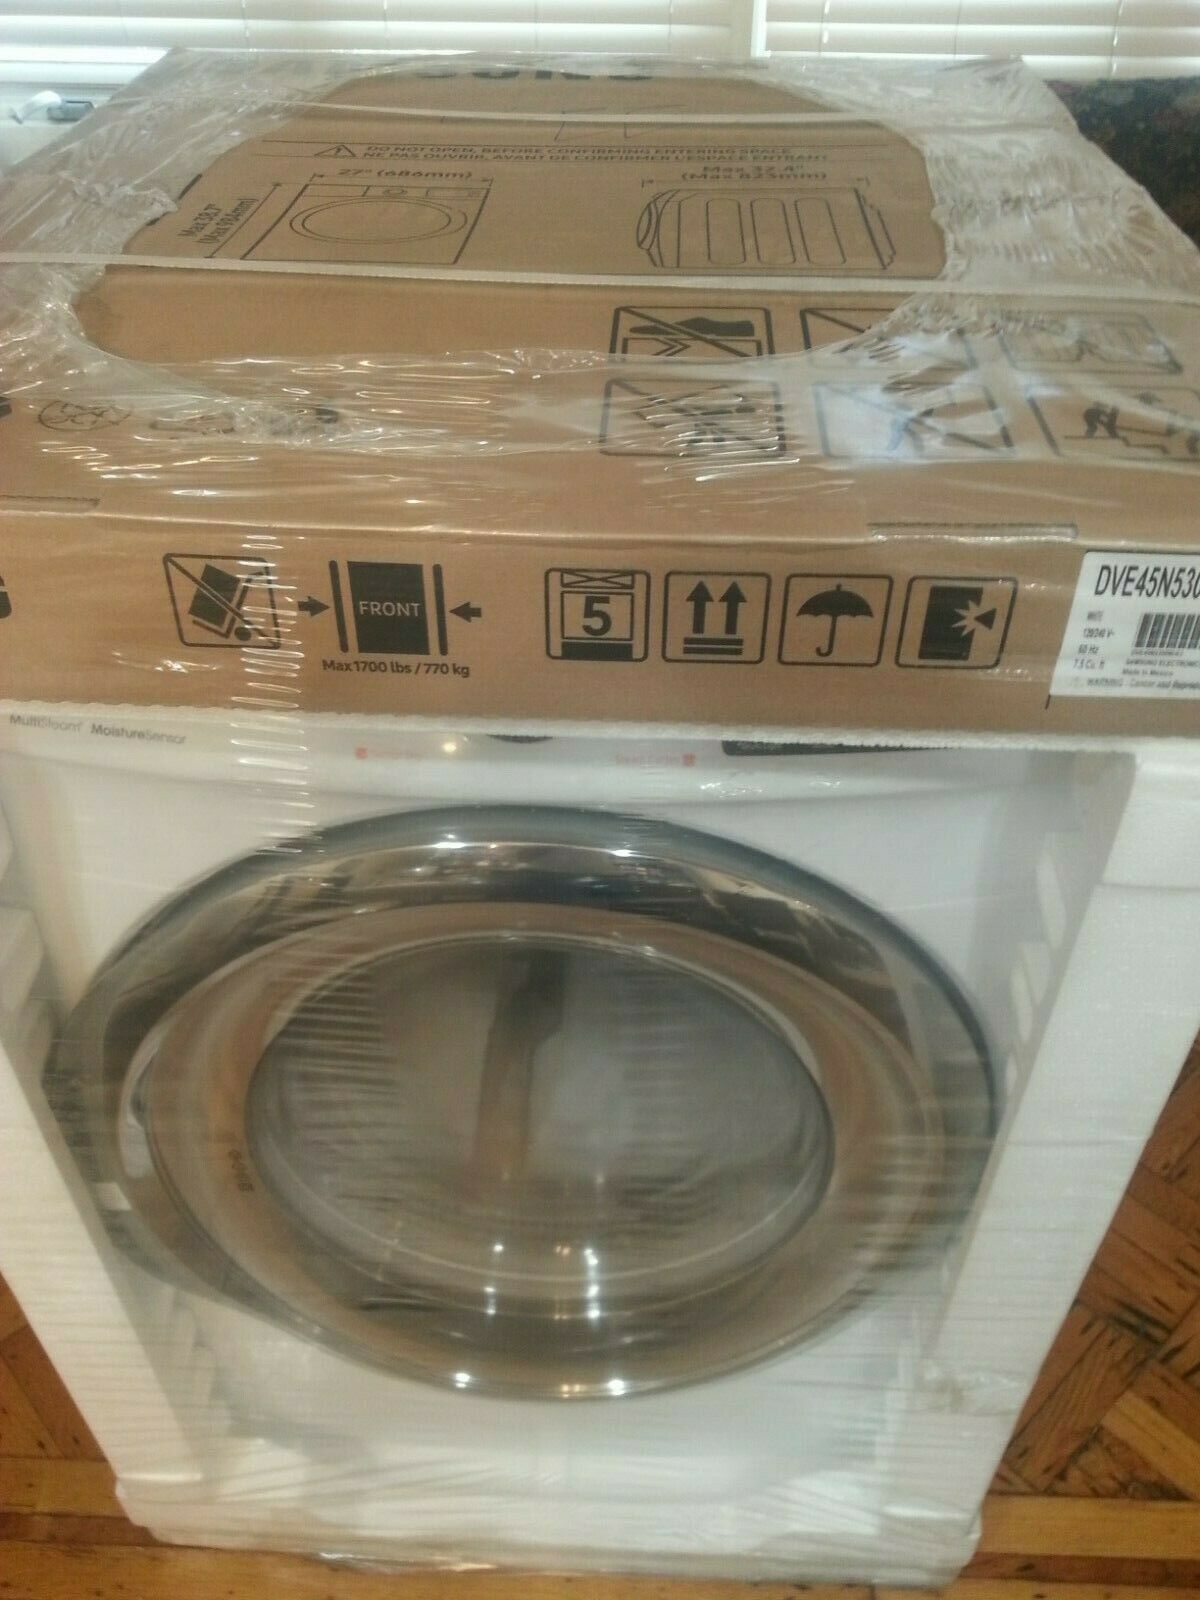 DV5300 7.5 cu. ft. Electric Dryer with Steam-Brand new!